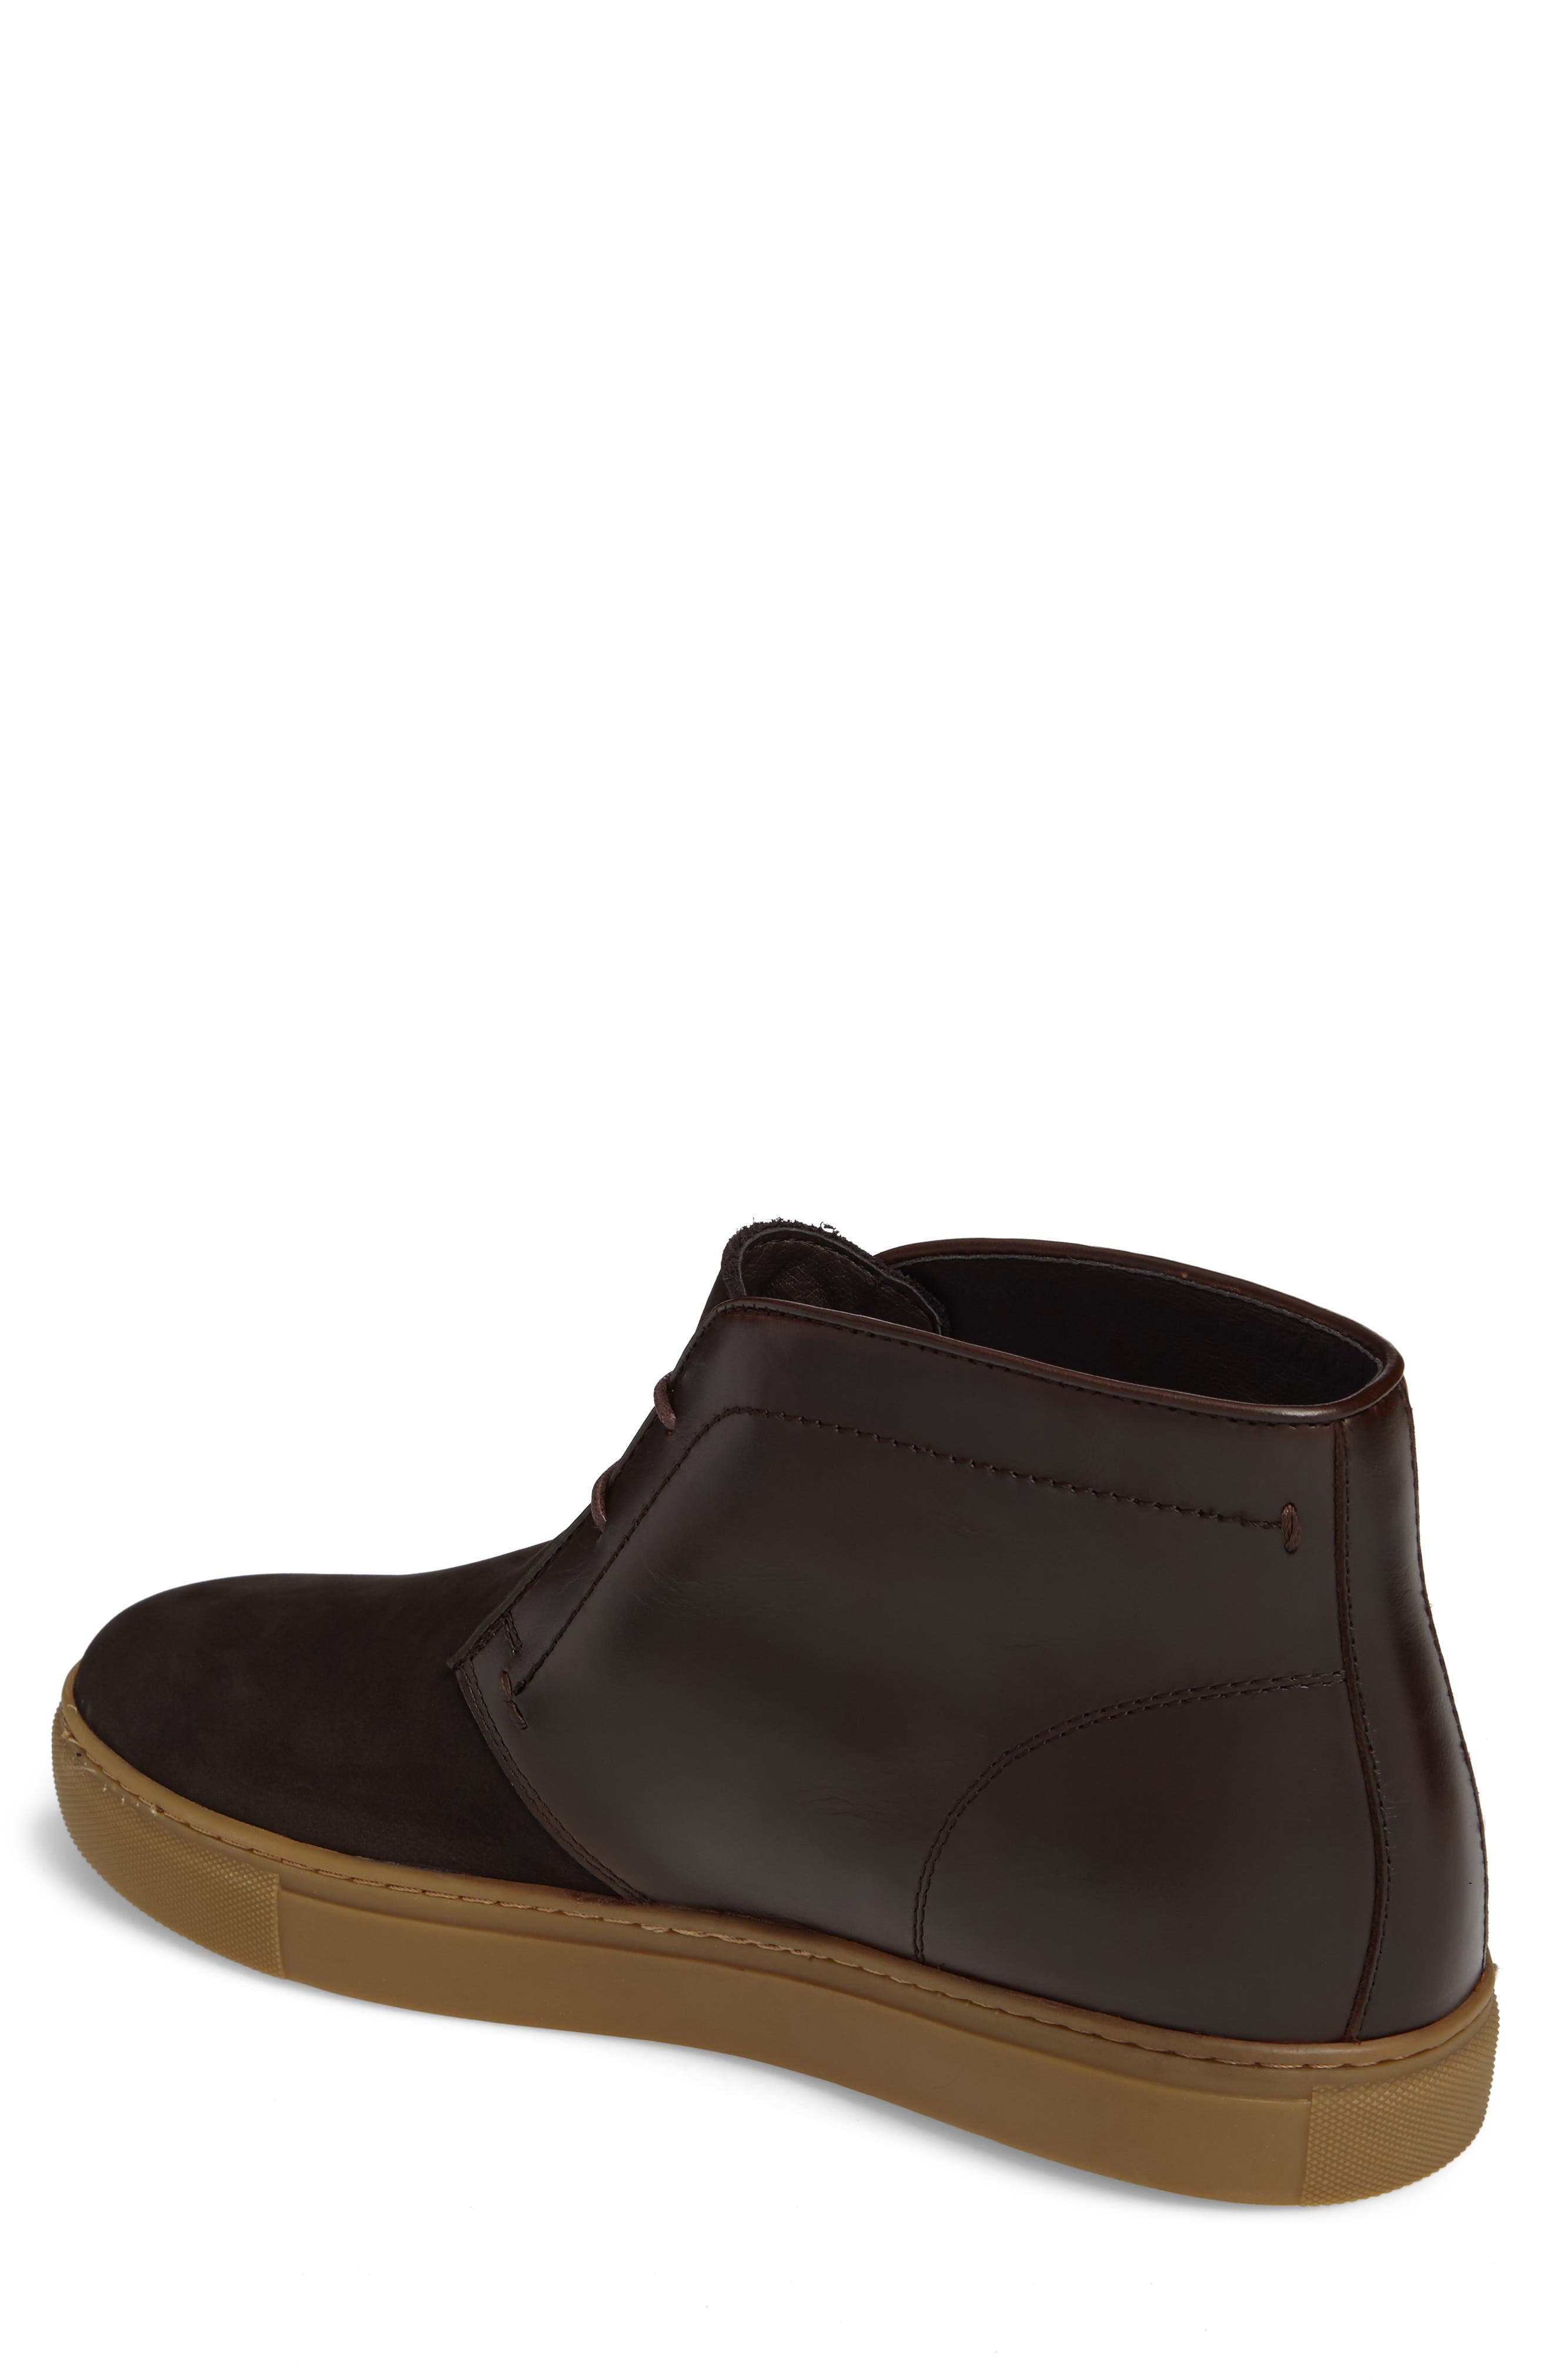 Laxey Mid Sneaker,                             Alternate thumbnail 2, color,                             Brown